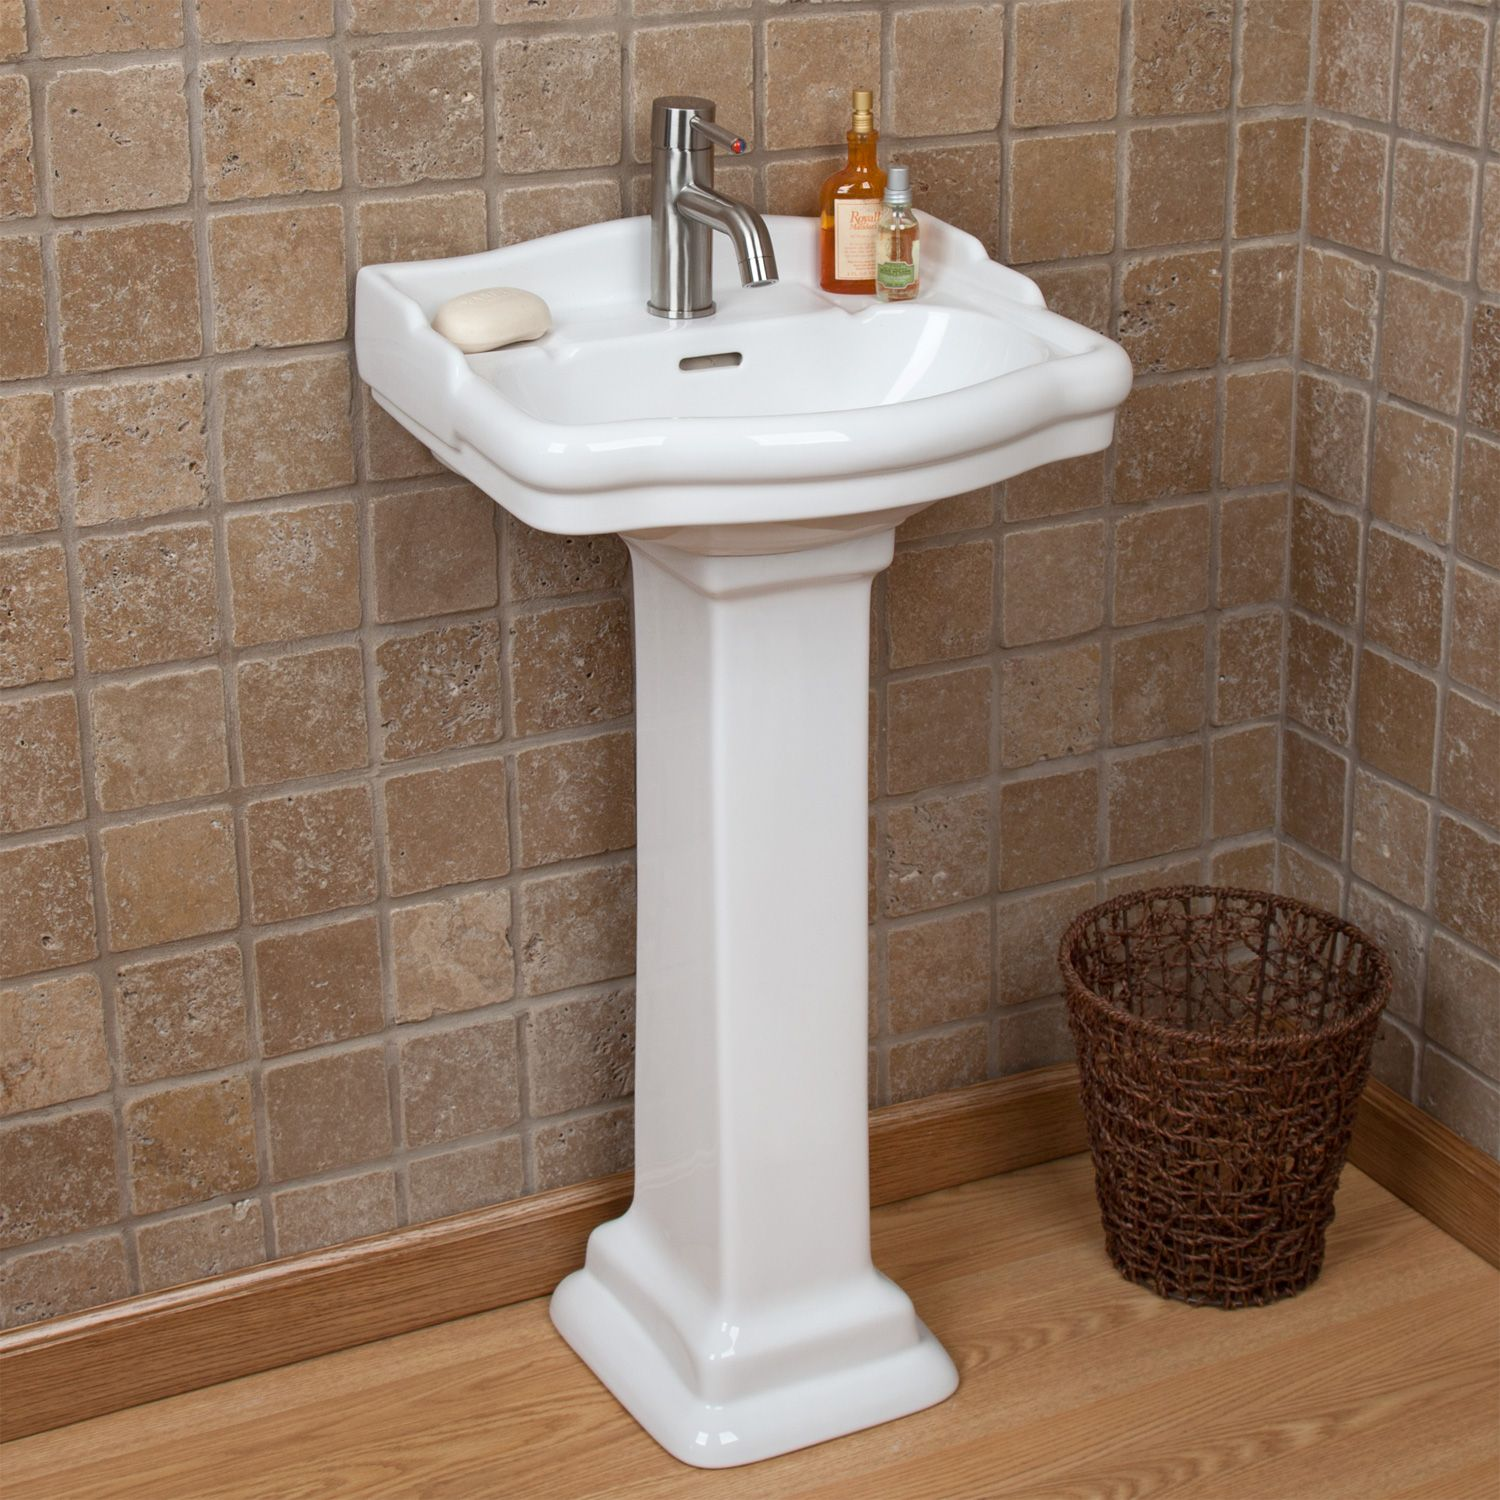 268  Stanford Mini Pedestal Sink with Single Faucet Hole Overall dimensions 1814 L x 15 W